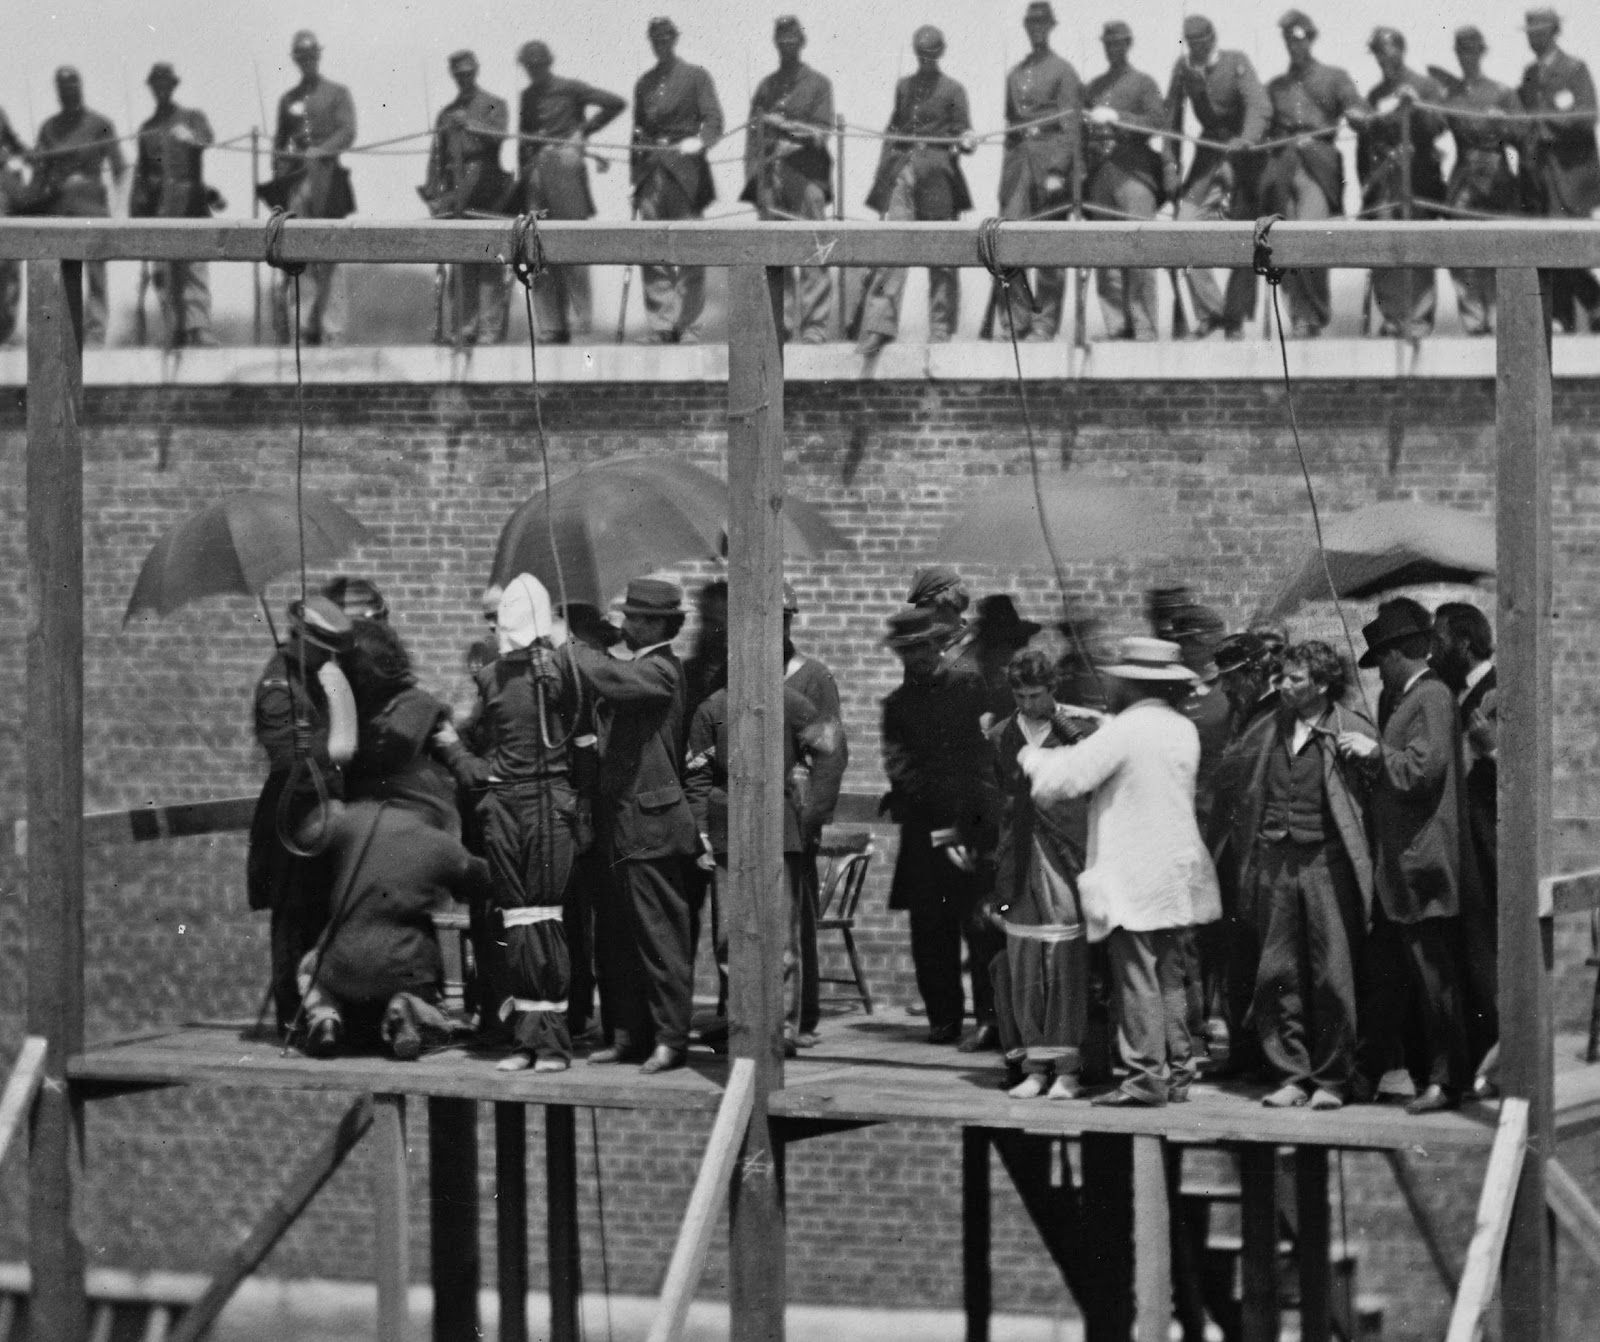 Quotes From The Movie Lincoln: Public Execution, And Execution In General, Used To Be